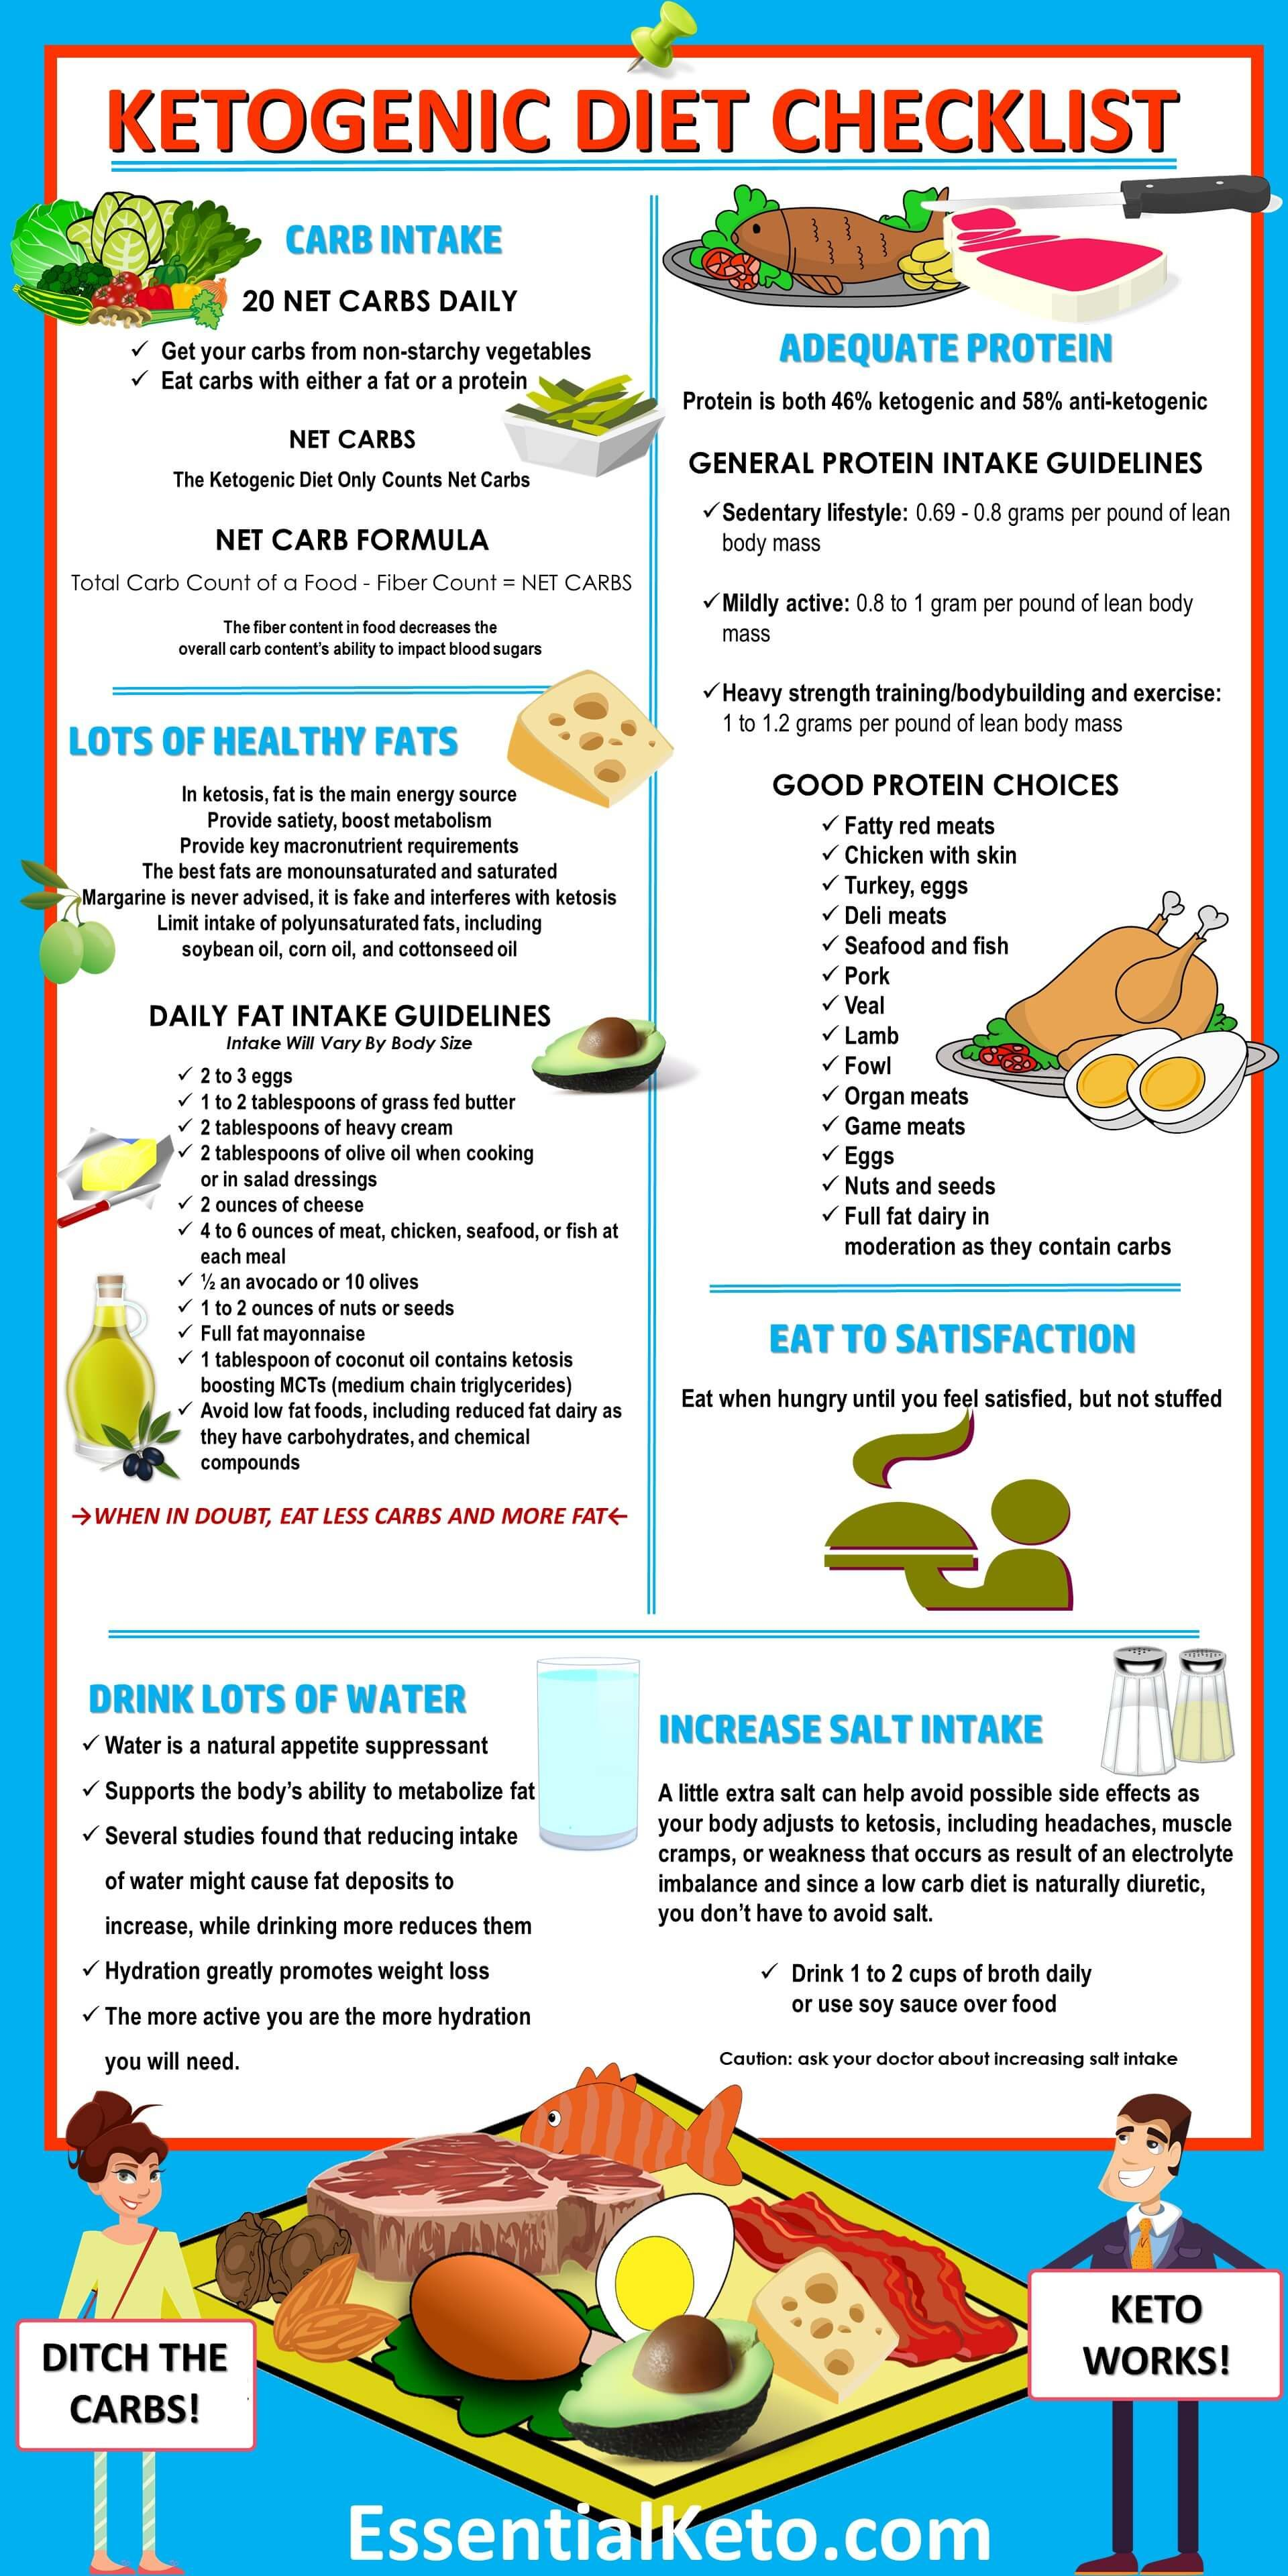 Keto Diet Food List: 221 Keto Diet Foods (+ Printable Cheat Sheet)